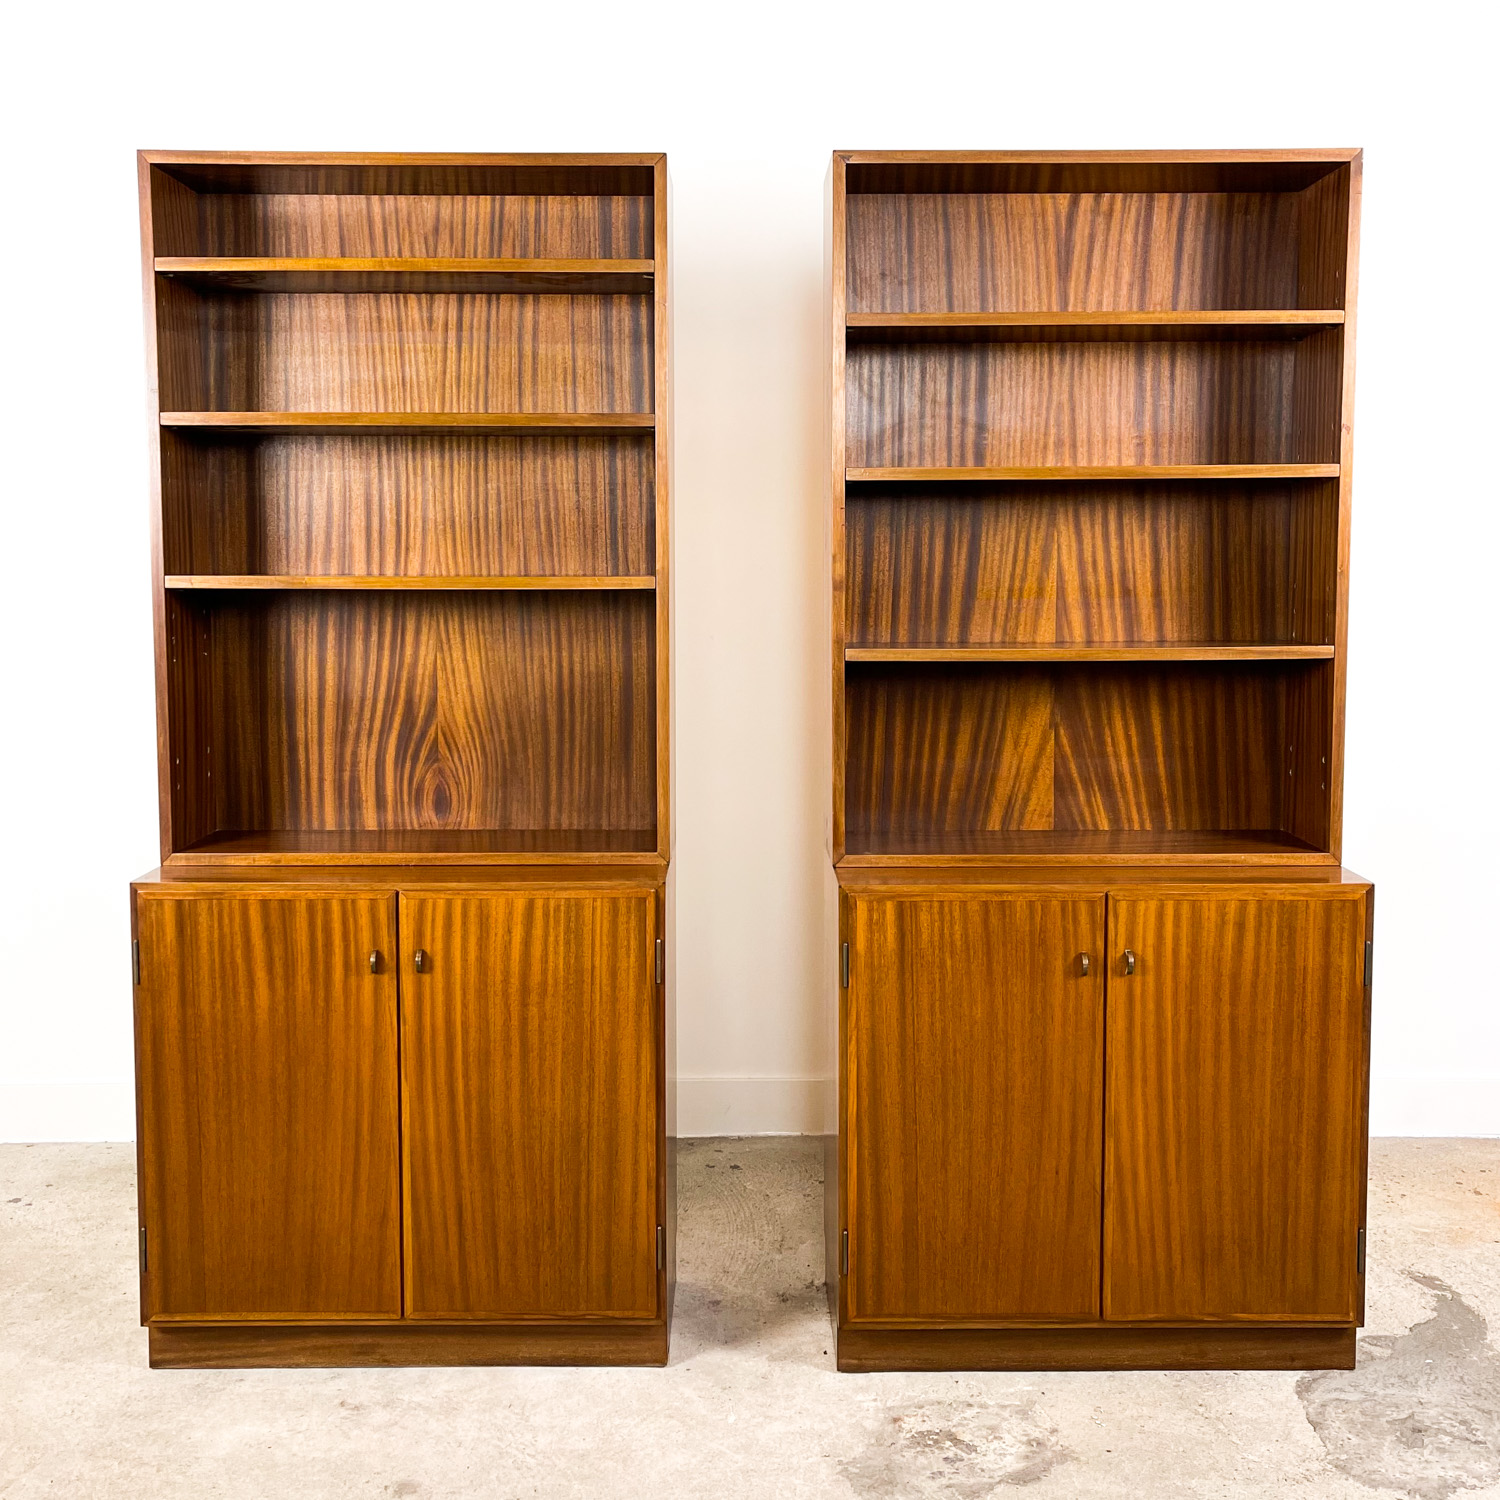 Set of two swedish mid-century modern book cases by Royal Board